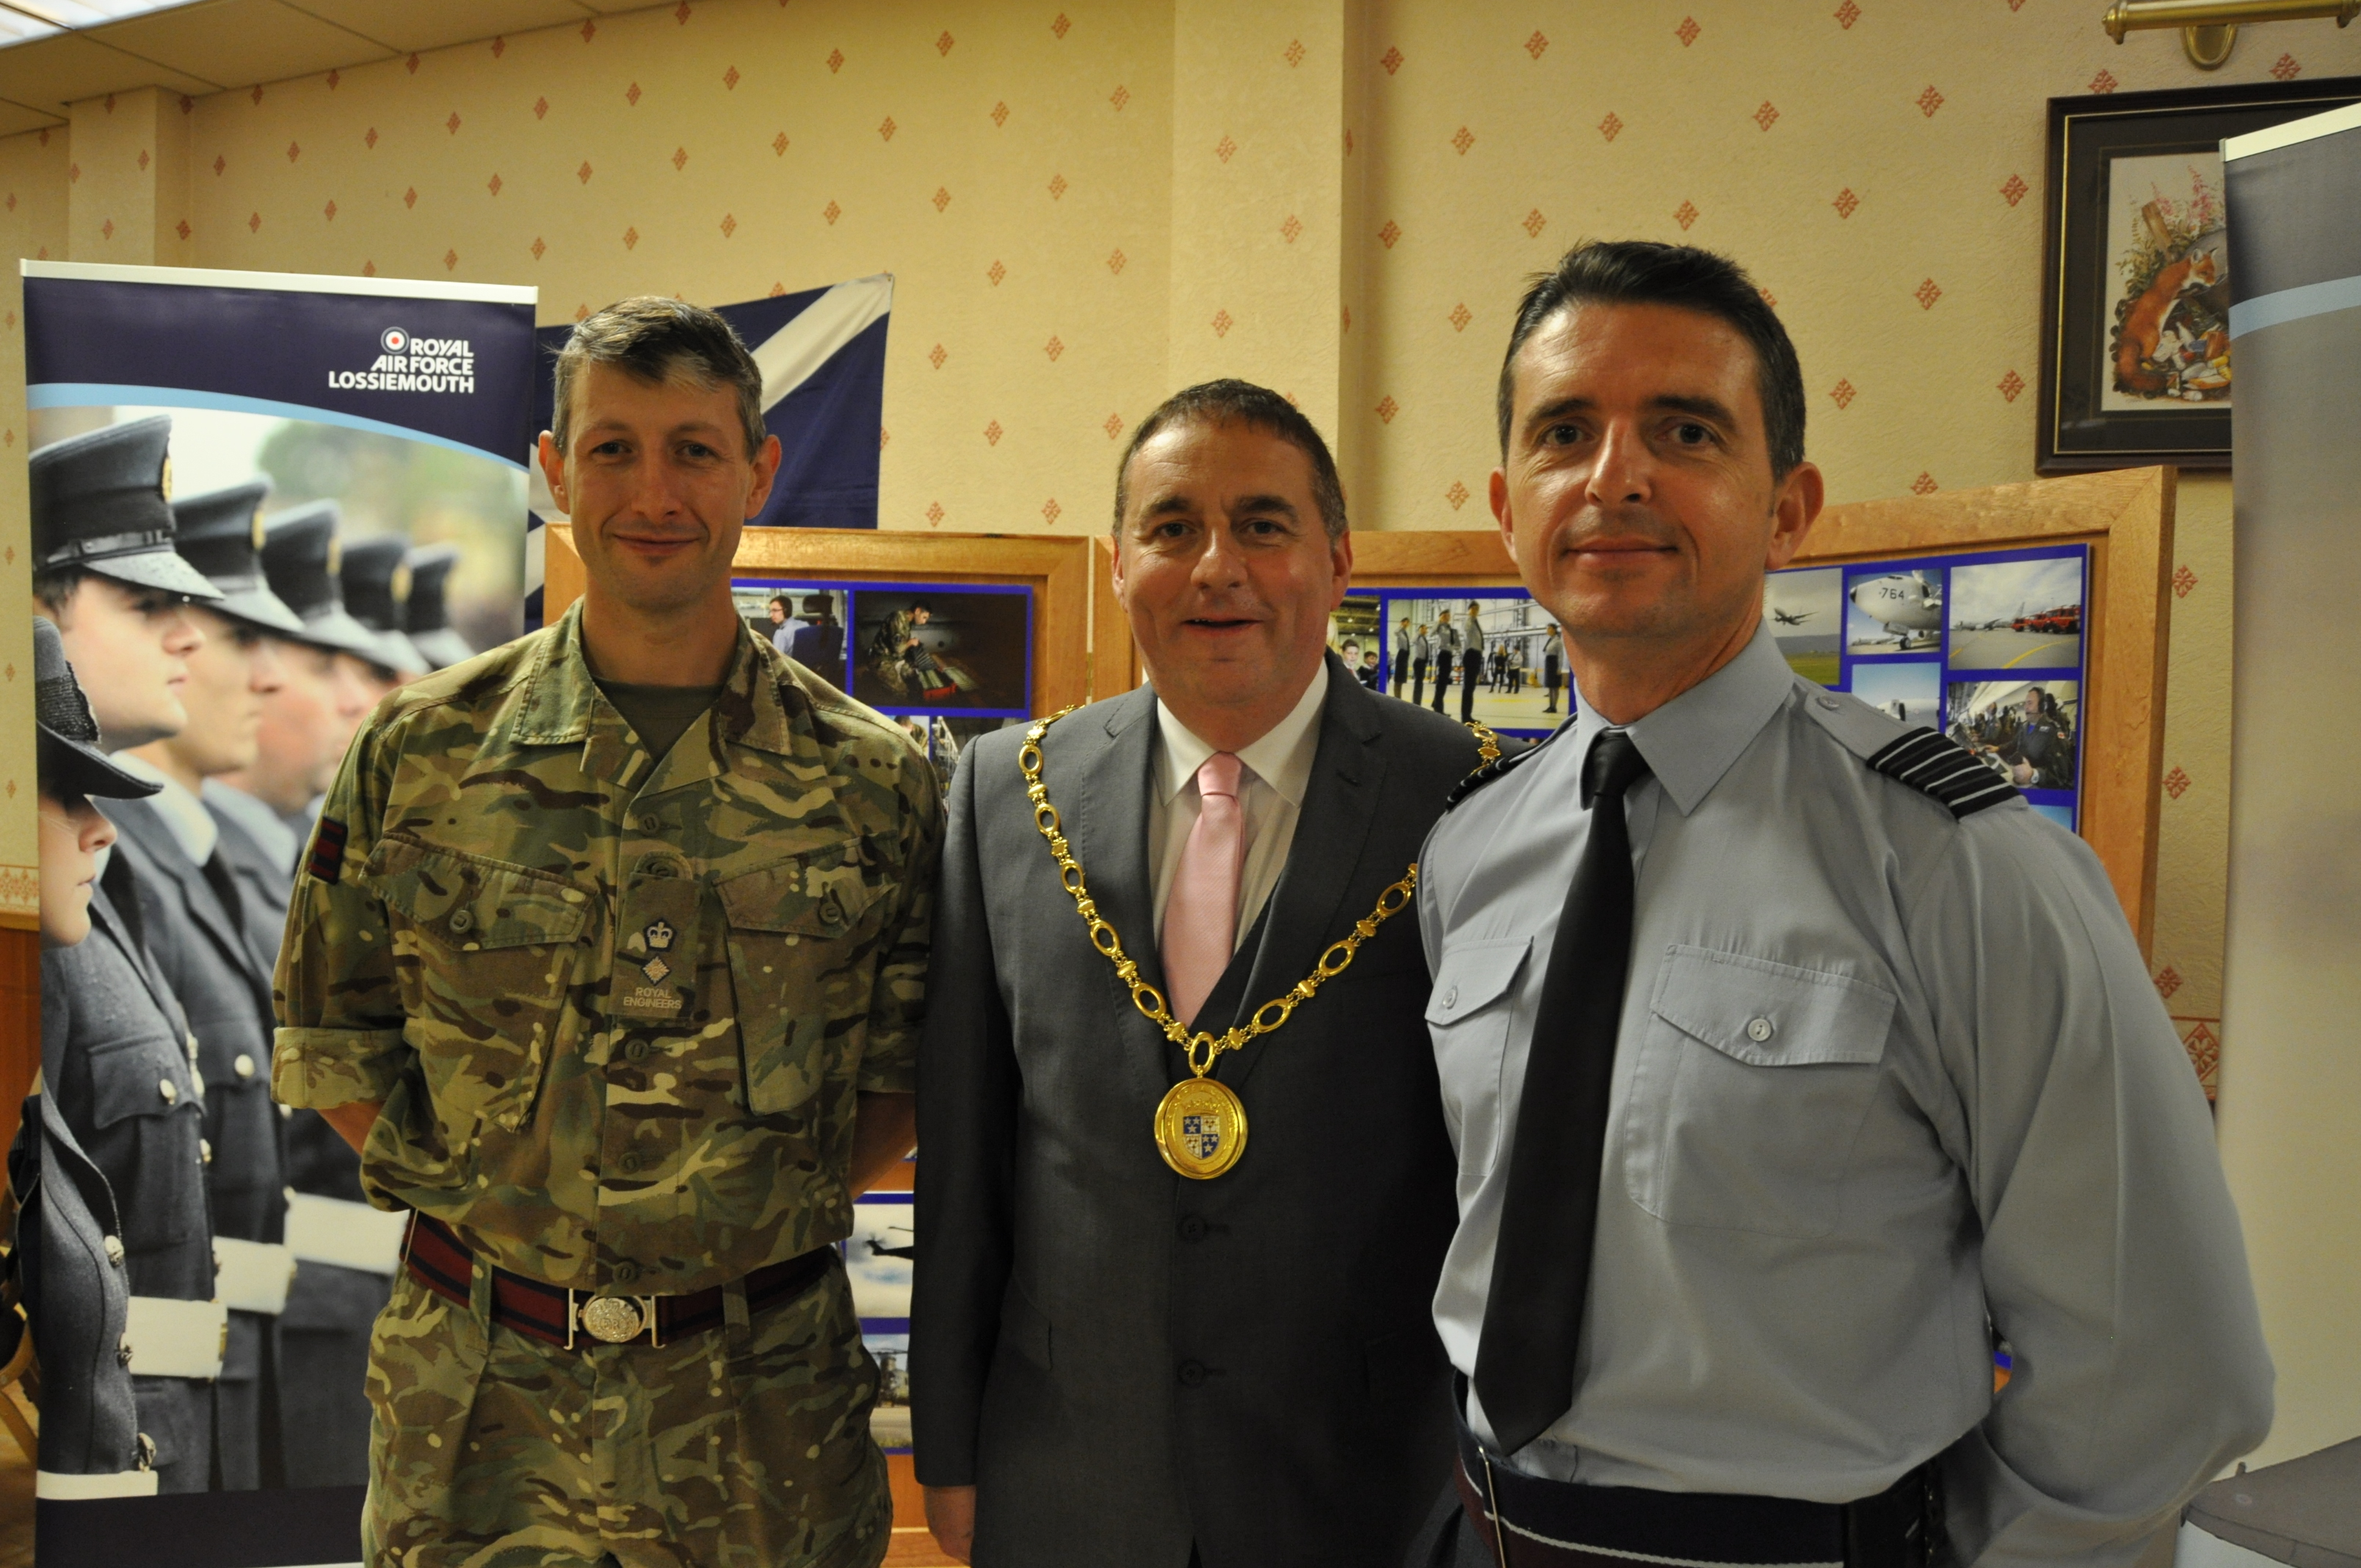 Moray Council convener James Allan with Lt Col Jim Webster of 39 Engineer at Kinloss Barracks, left, and Gp Cpt Paul Godfrey, base commander at RAF Lossiemouth, right.